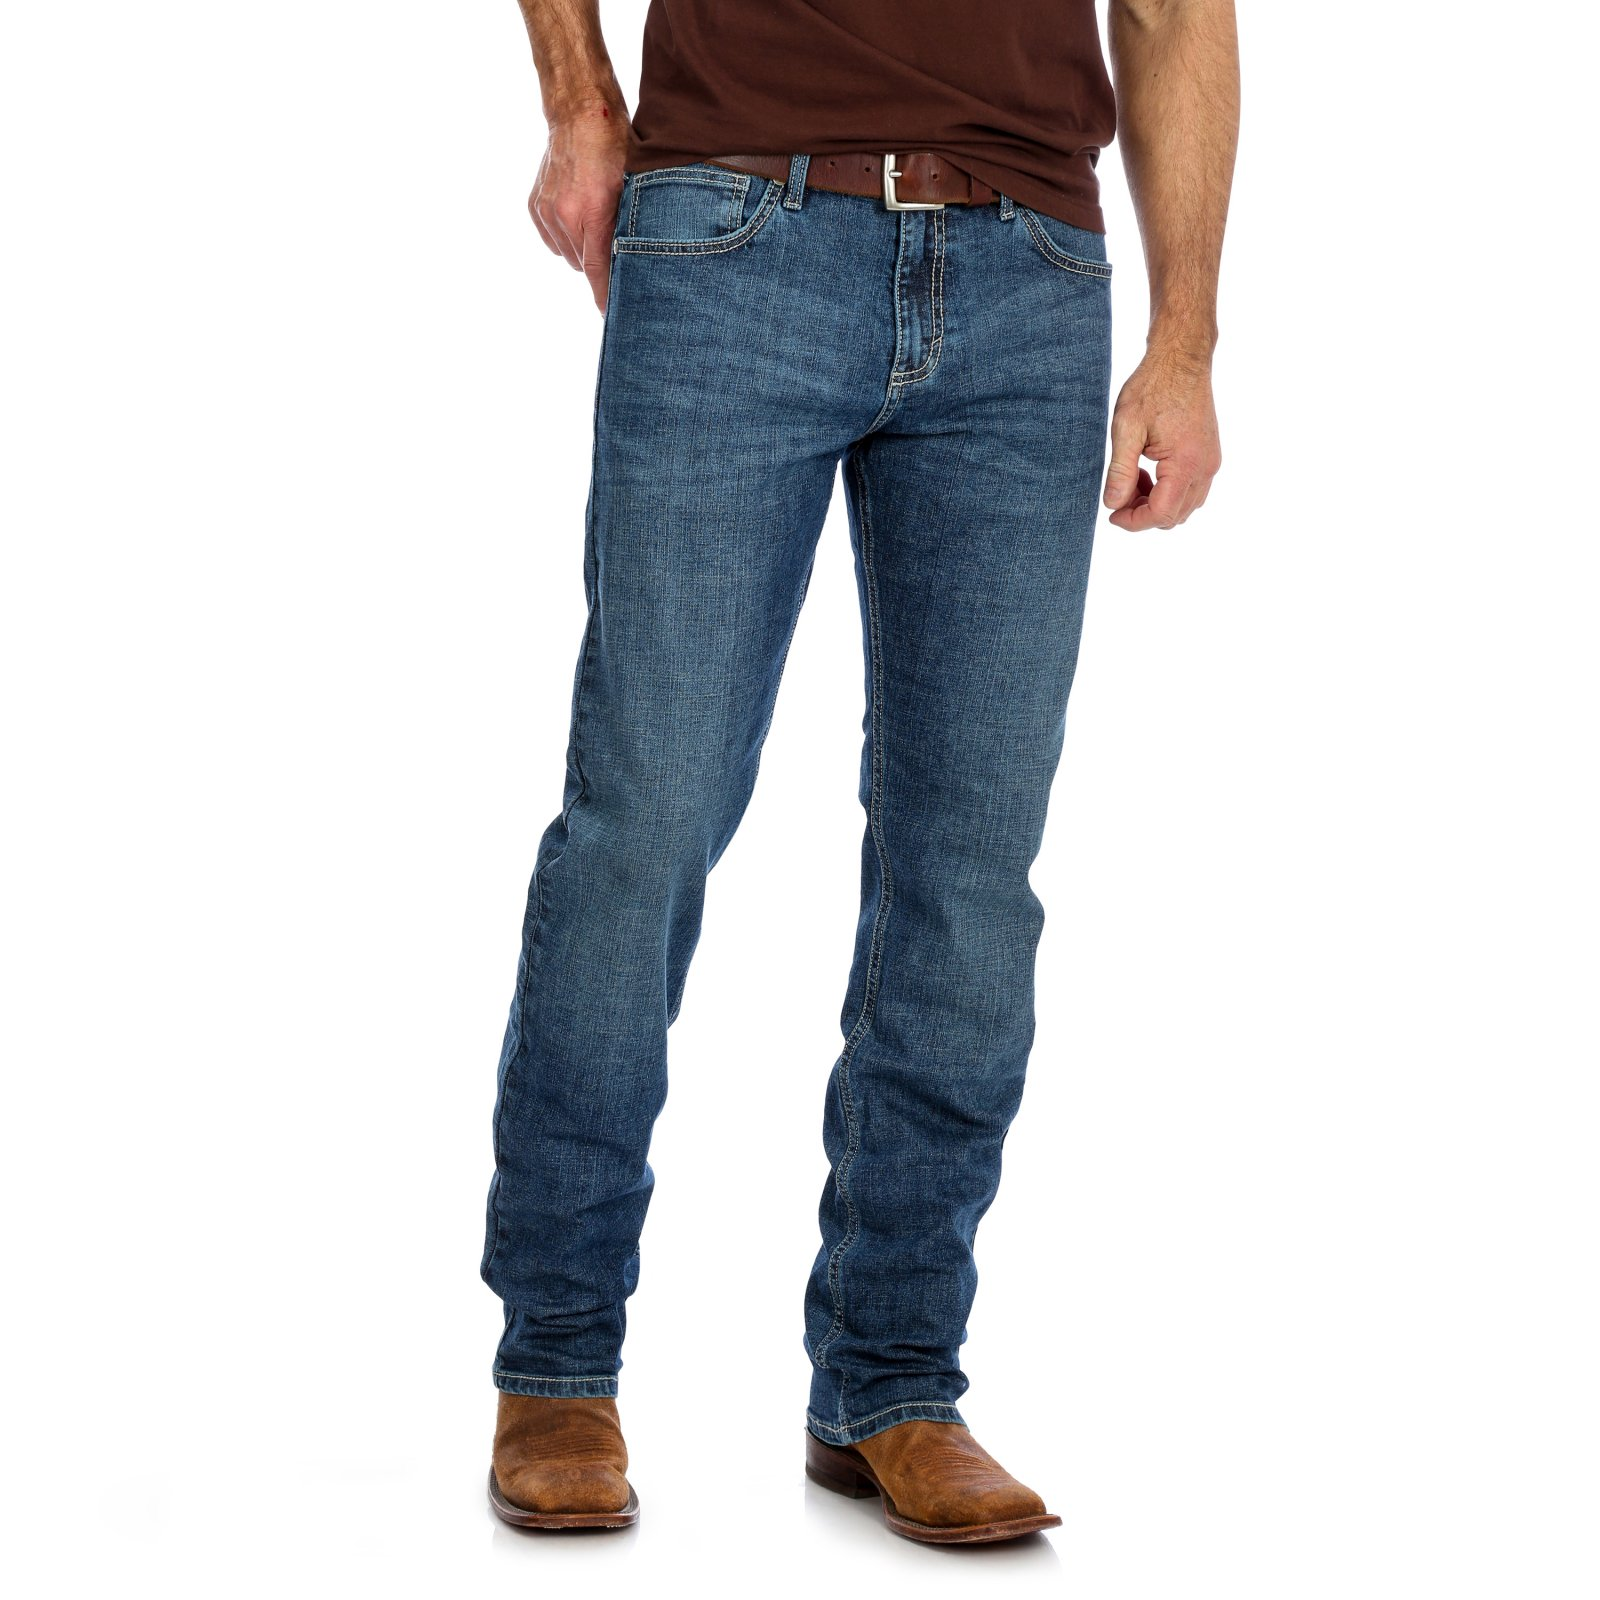 20X Slim Straight Jean from Wrangler